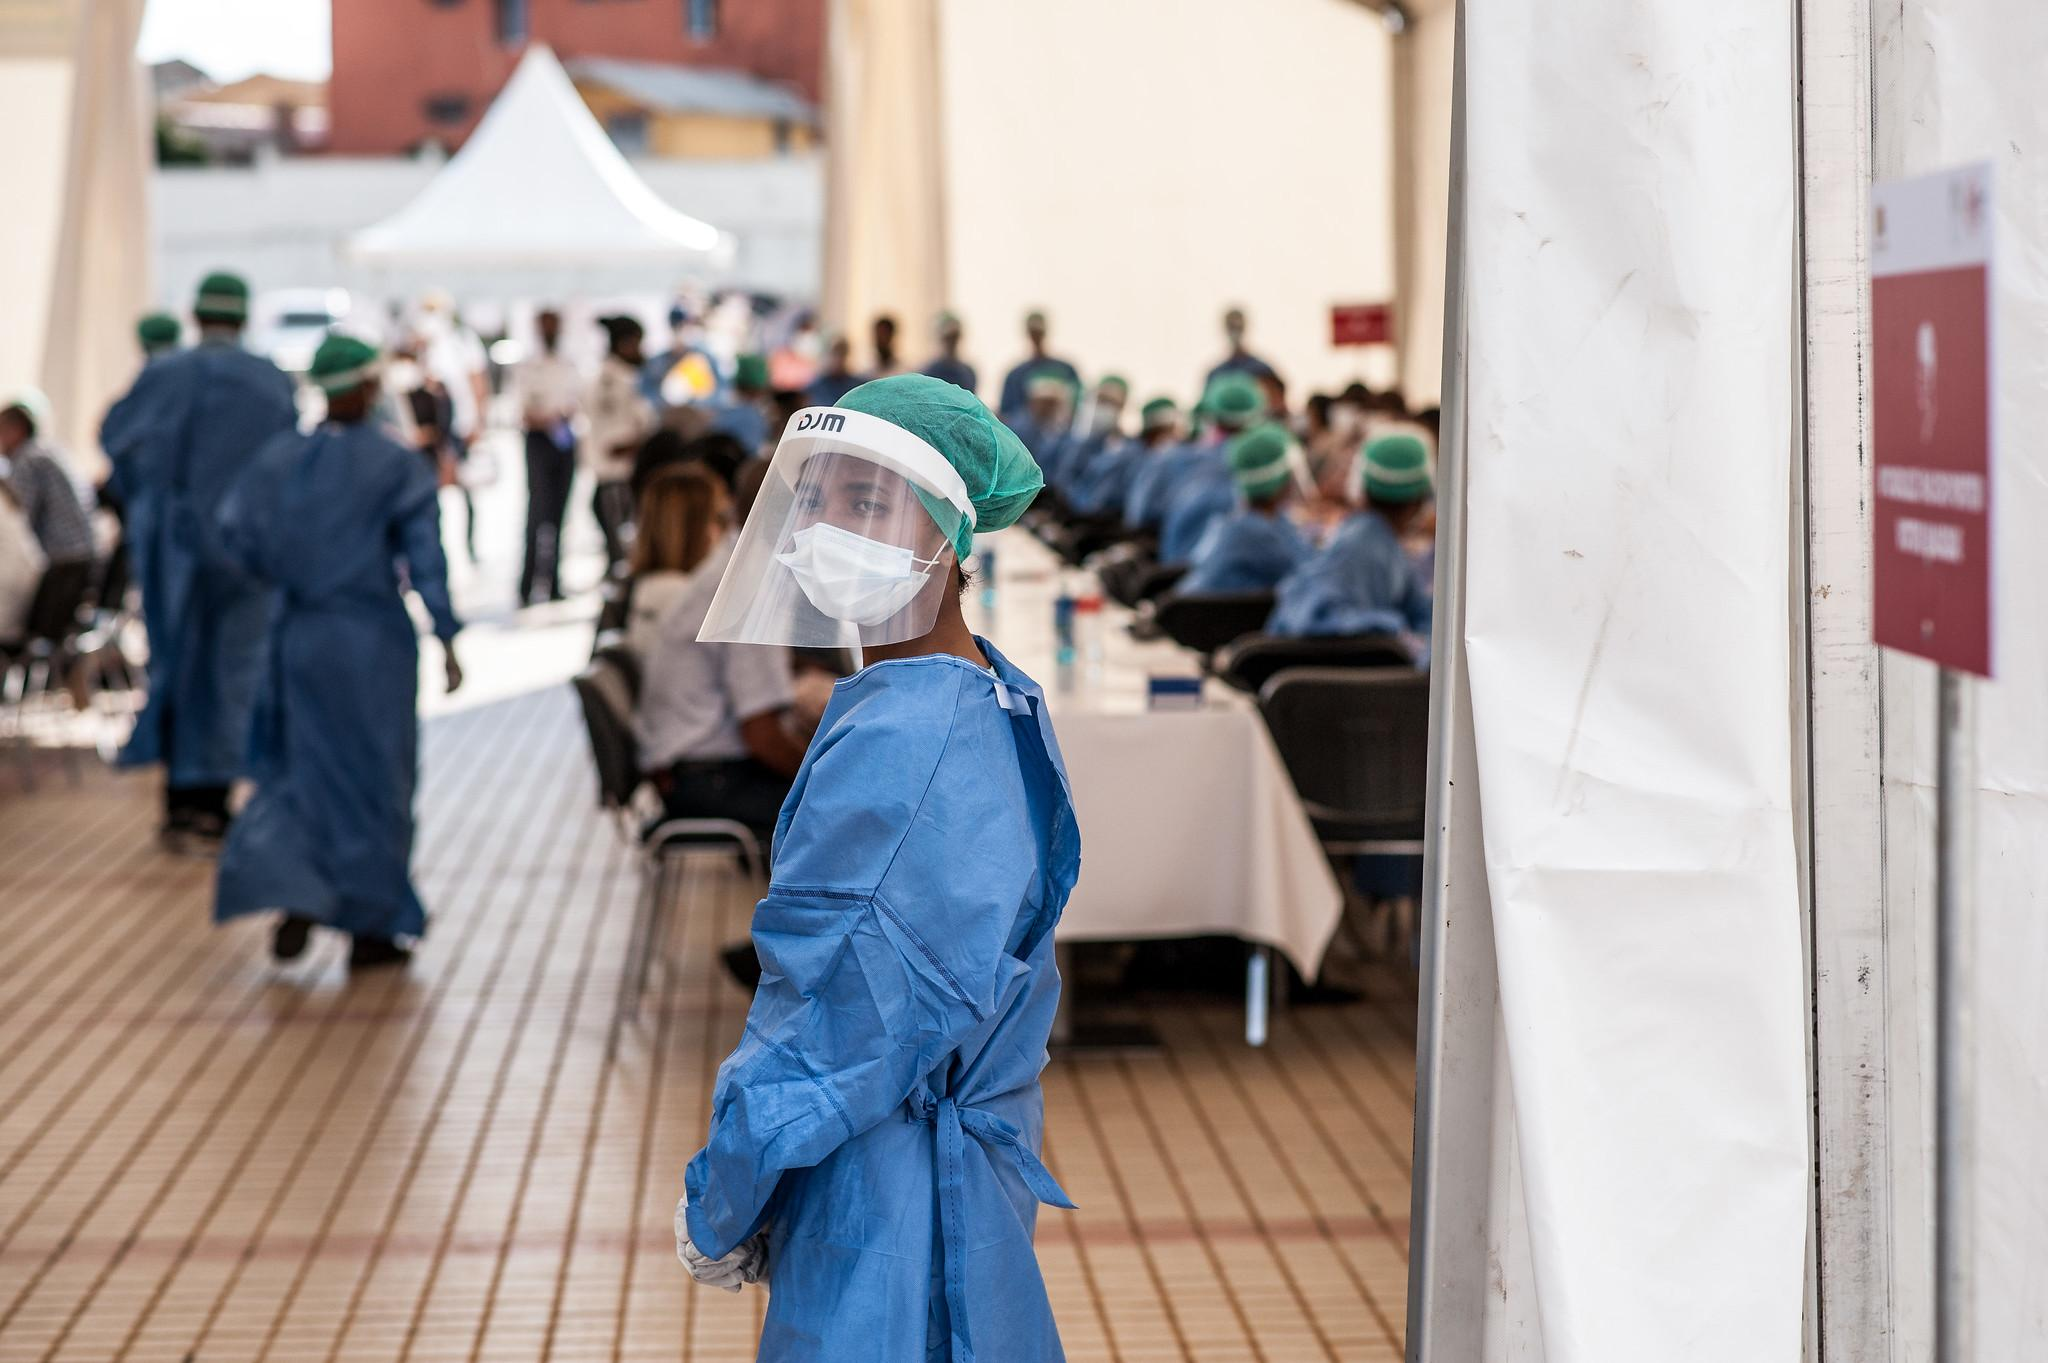 March 31, 2020 - MADAGASCAR. With Madagascar's health system under strain from the COVID-19 pandemic and schools shuttered for the foreseeable future, the health, education, and overall wellbeing of the Malagasy people are increasingly at risk. As the pan